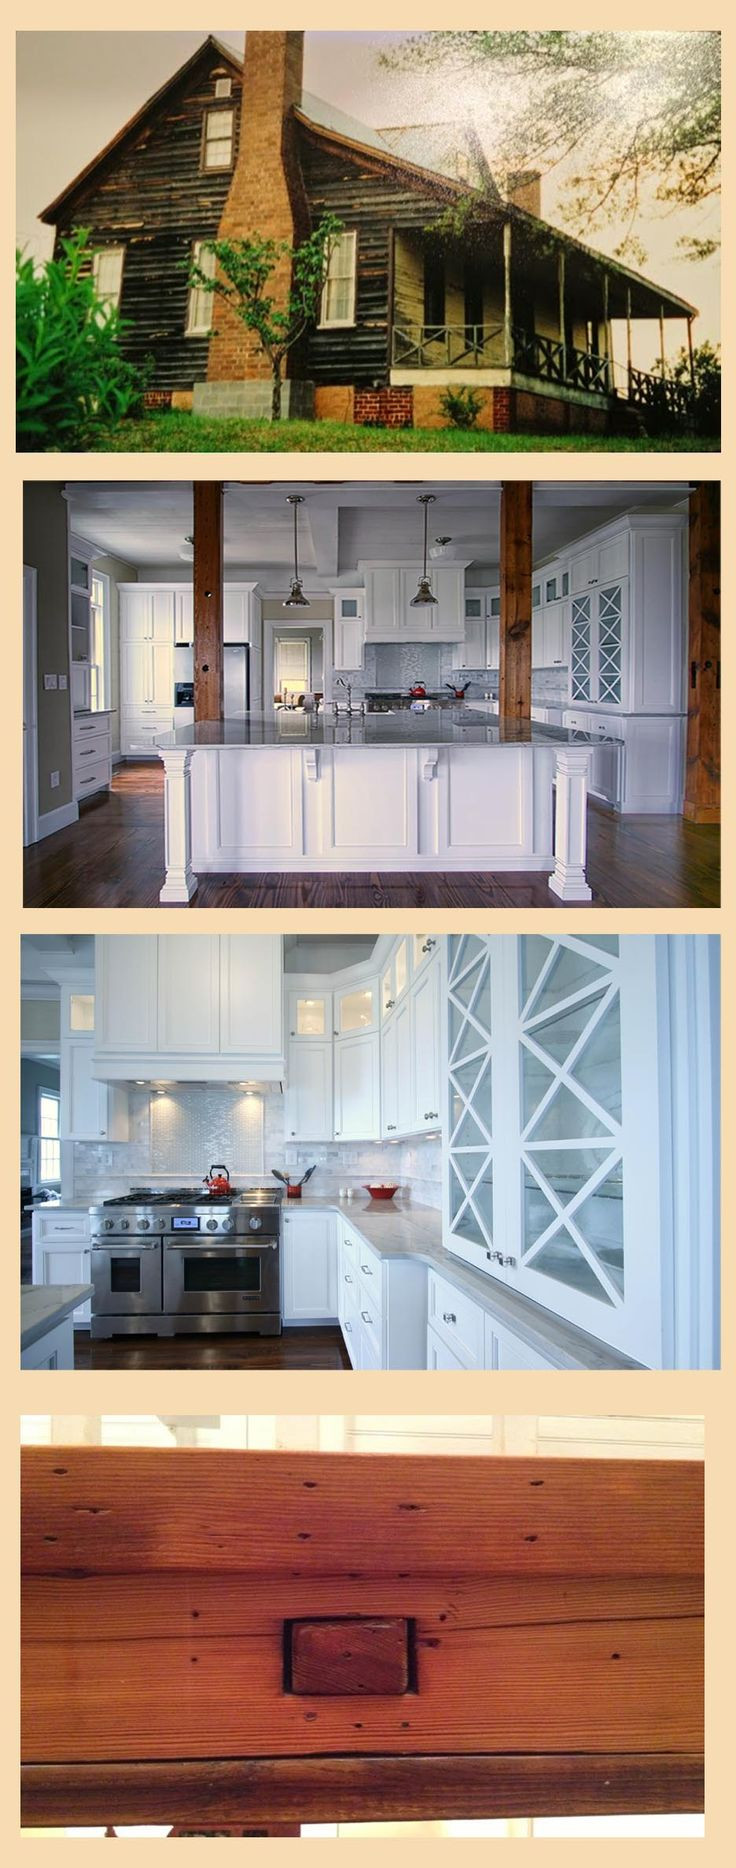 Phoenix Hardwood Flooring norwalk Ct Of 18 Best Small Kitchens Images On Pinterest Small Kitchens Tiny Inside This is A Great Remodel Project Read More About It Http